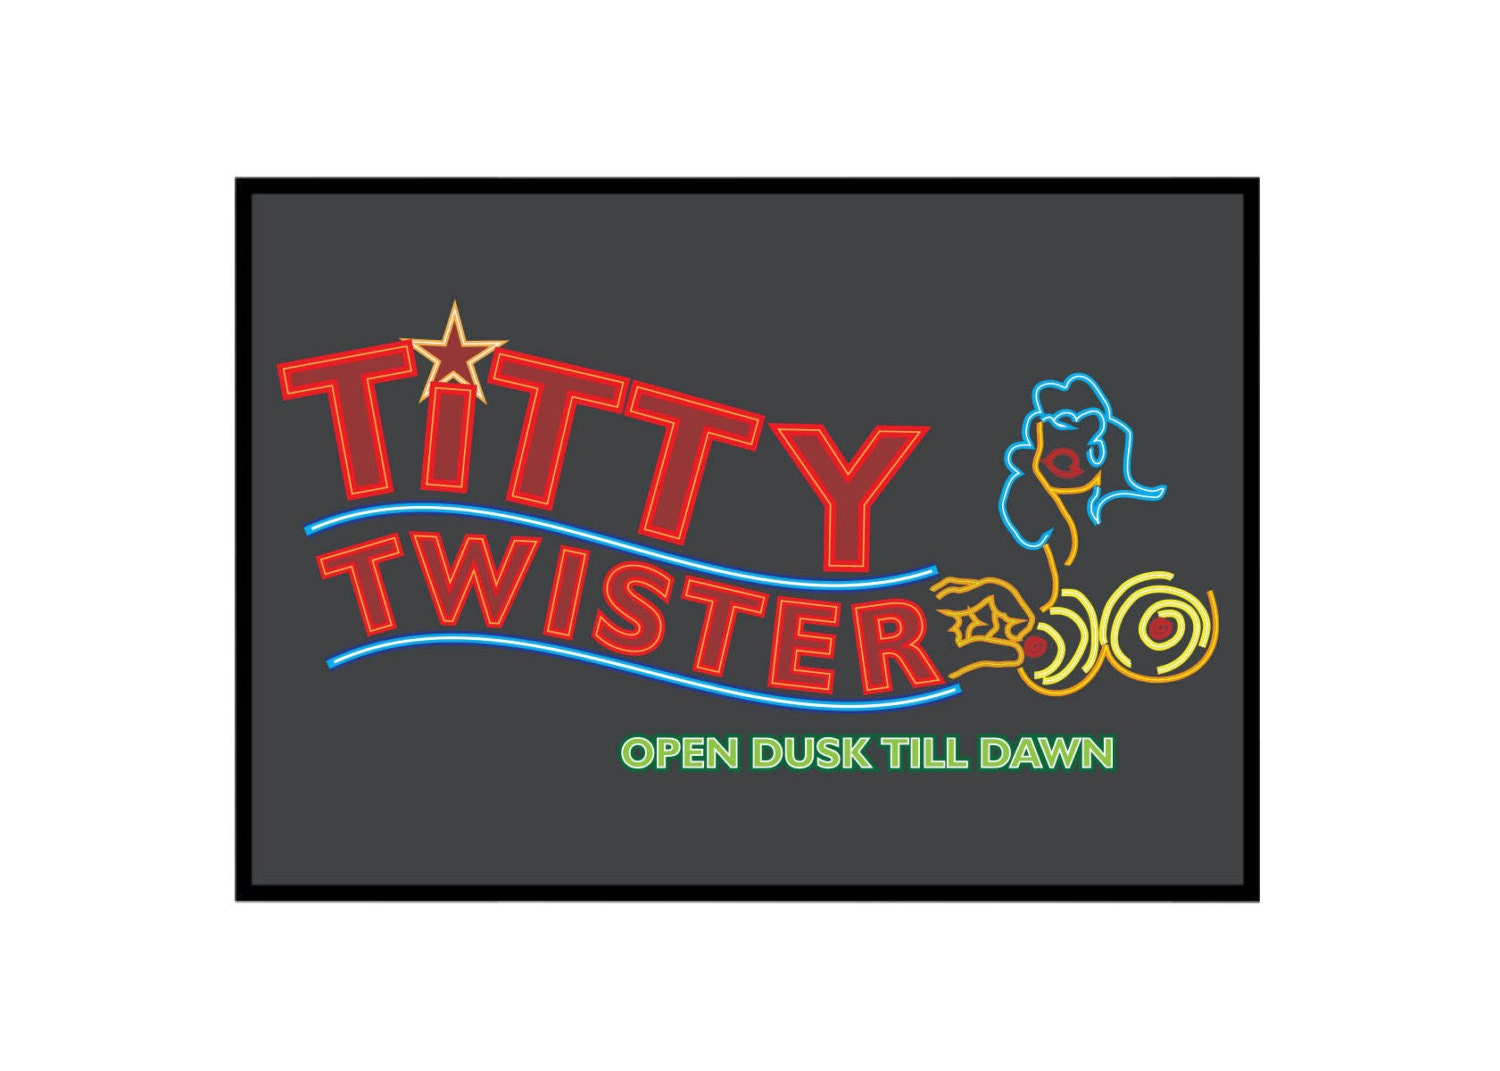 From Dusk Till Dawn: Titty Twister Poster   Etsy